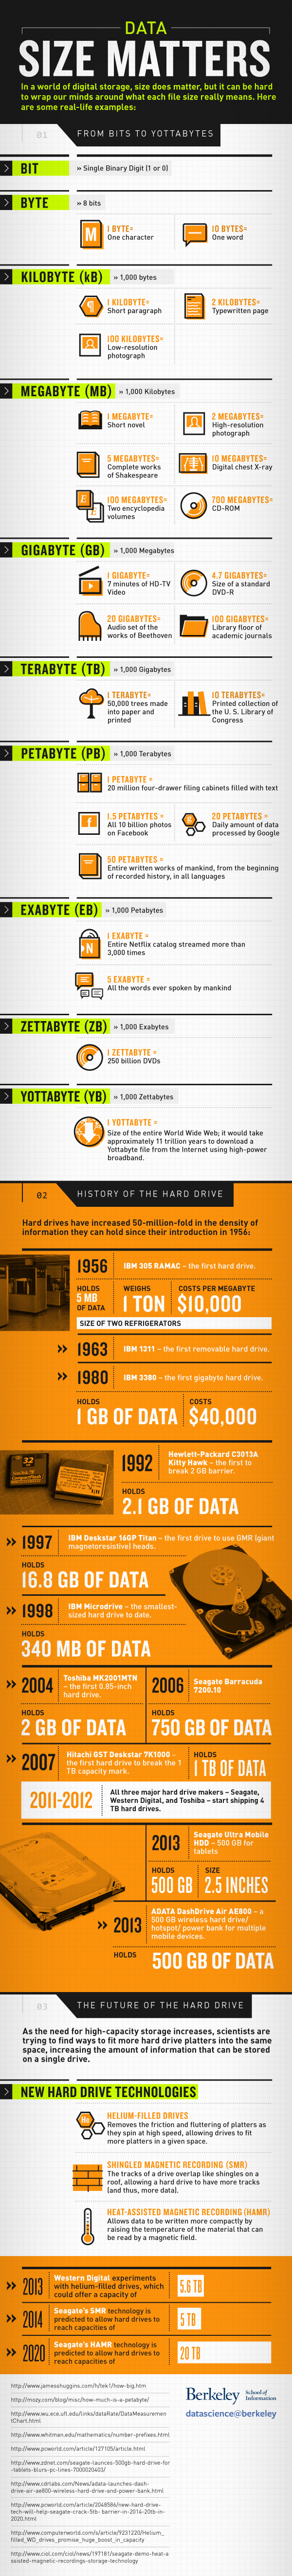 Data Size Matters from Bit to Yottabyte